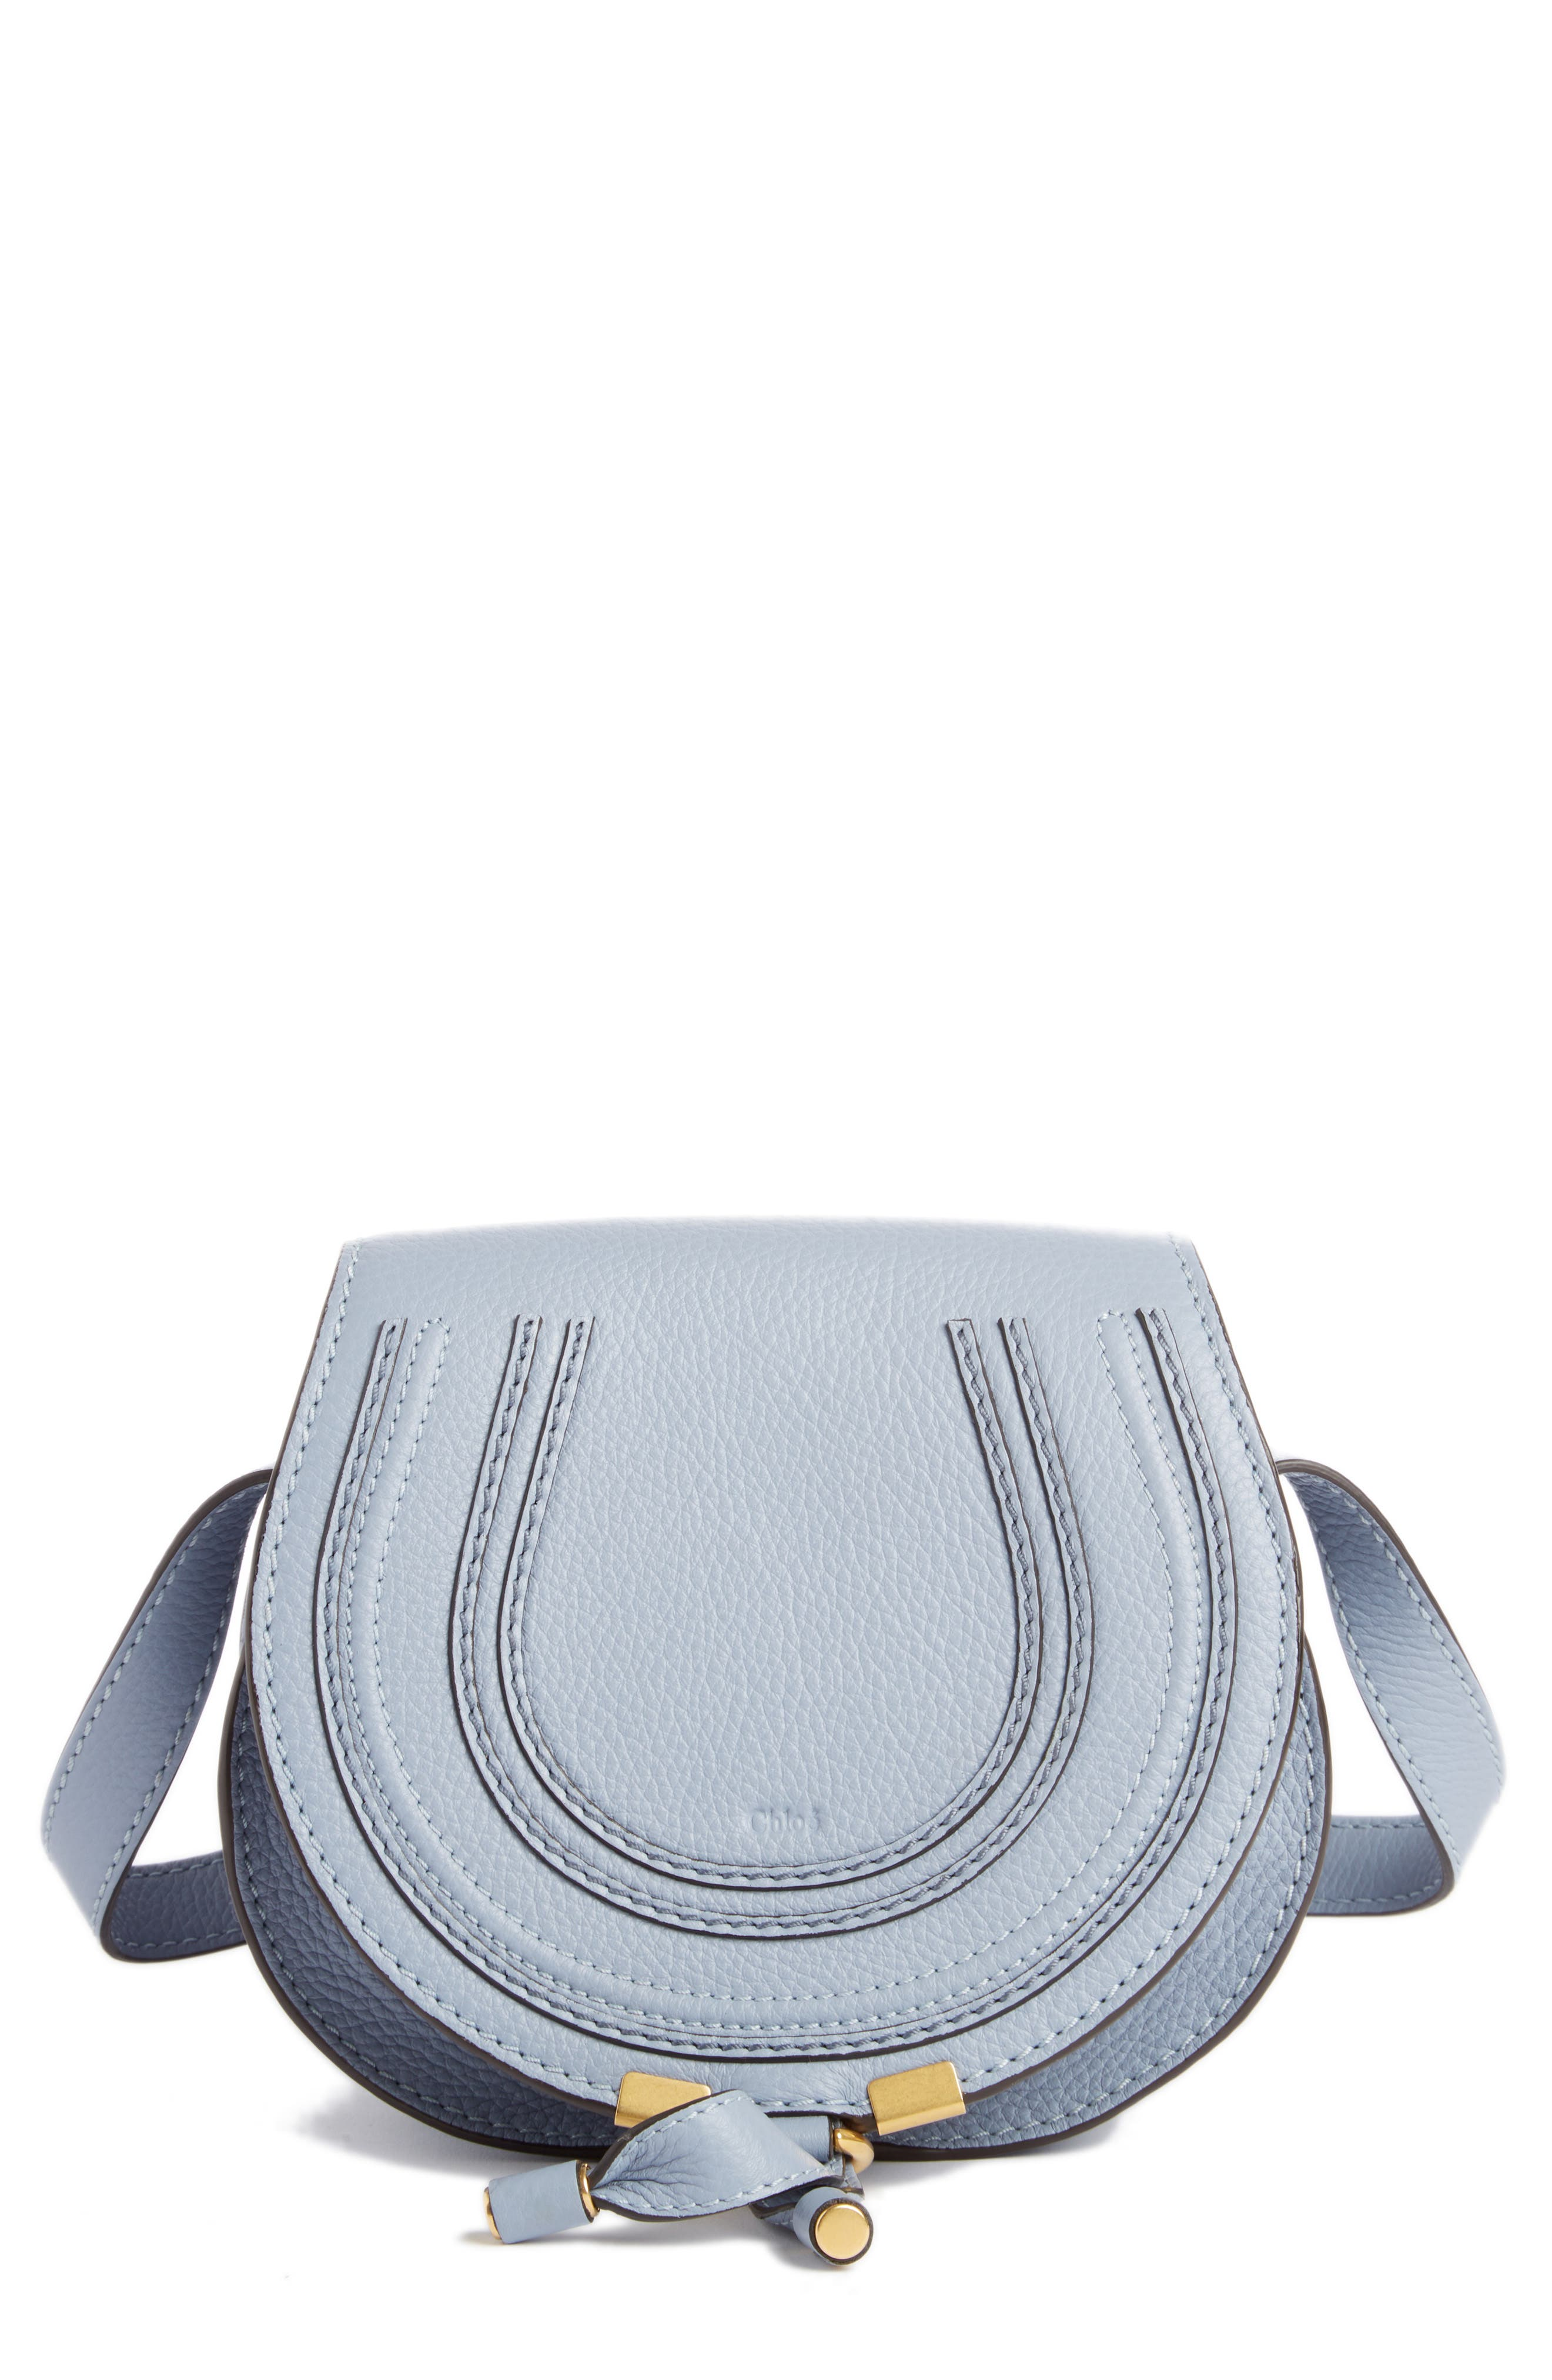 'Mini Marcie' Leather Crossbody Bag,                         Main,                         color, Washed Blue